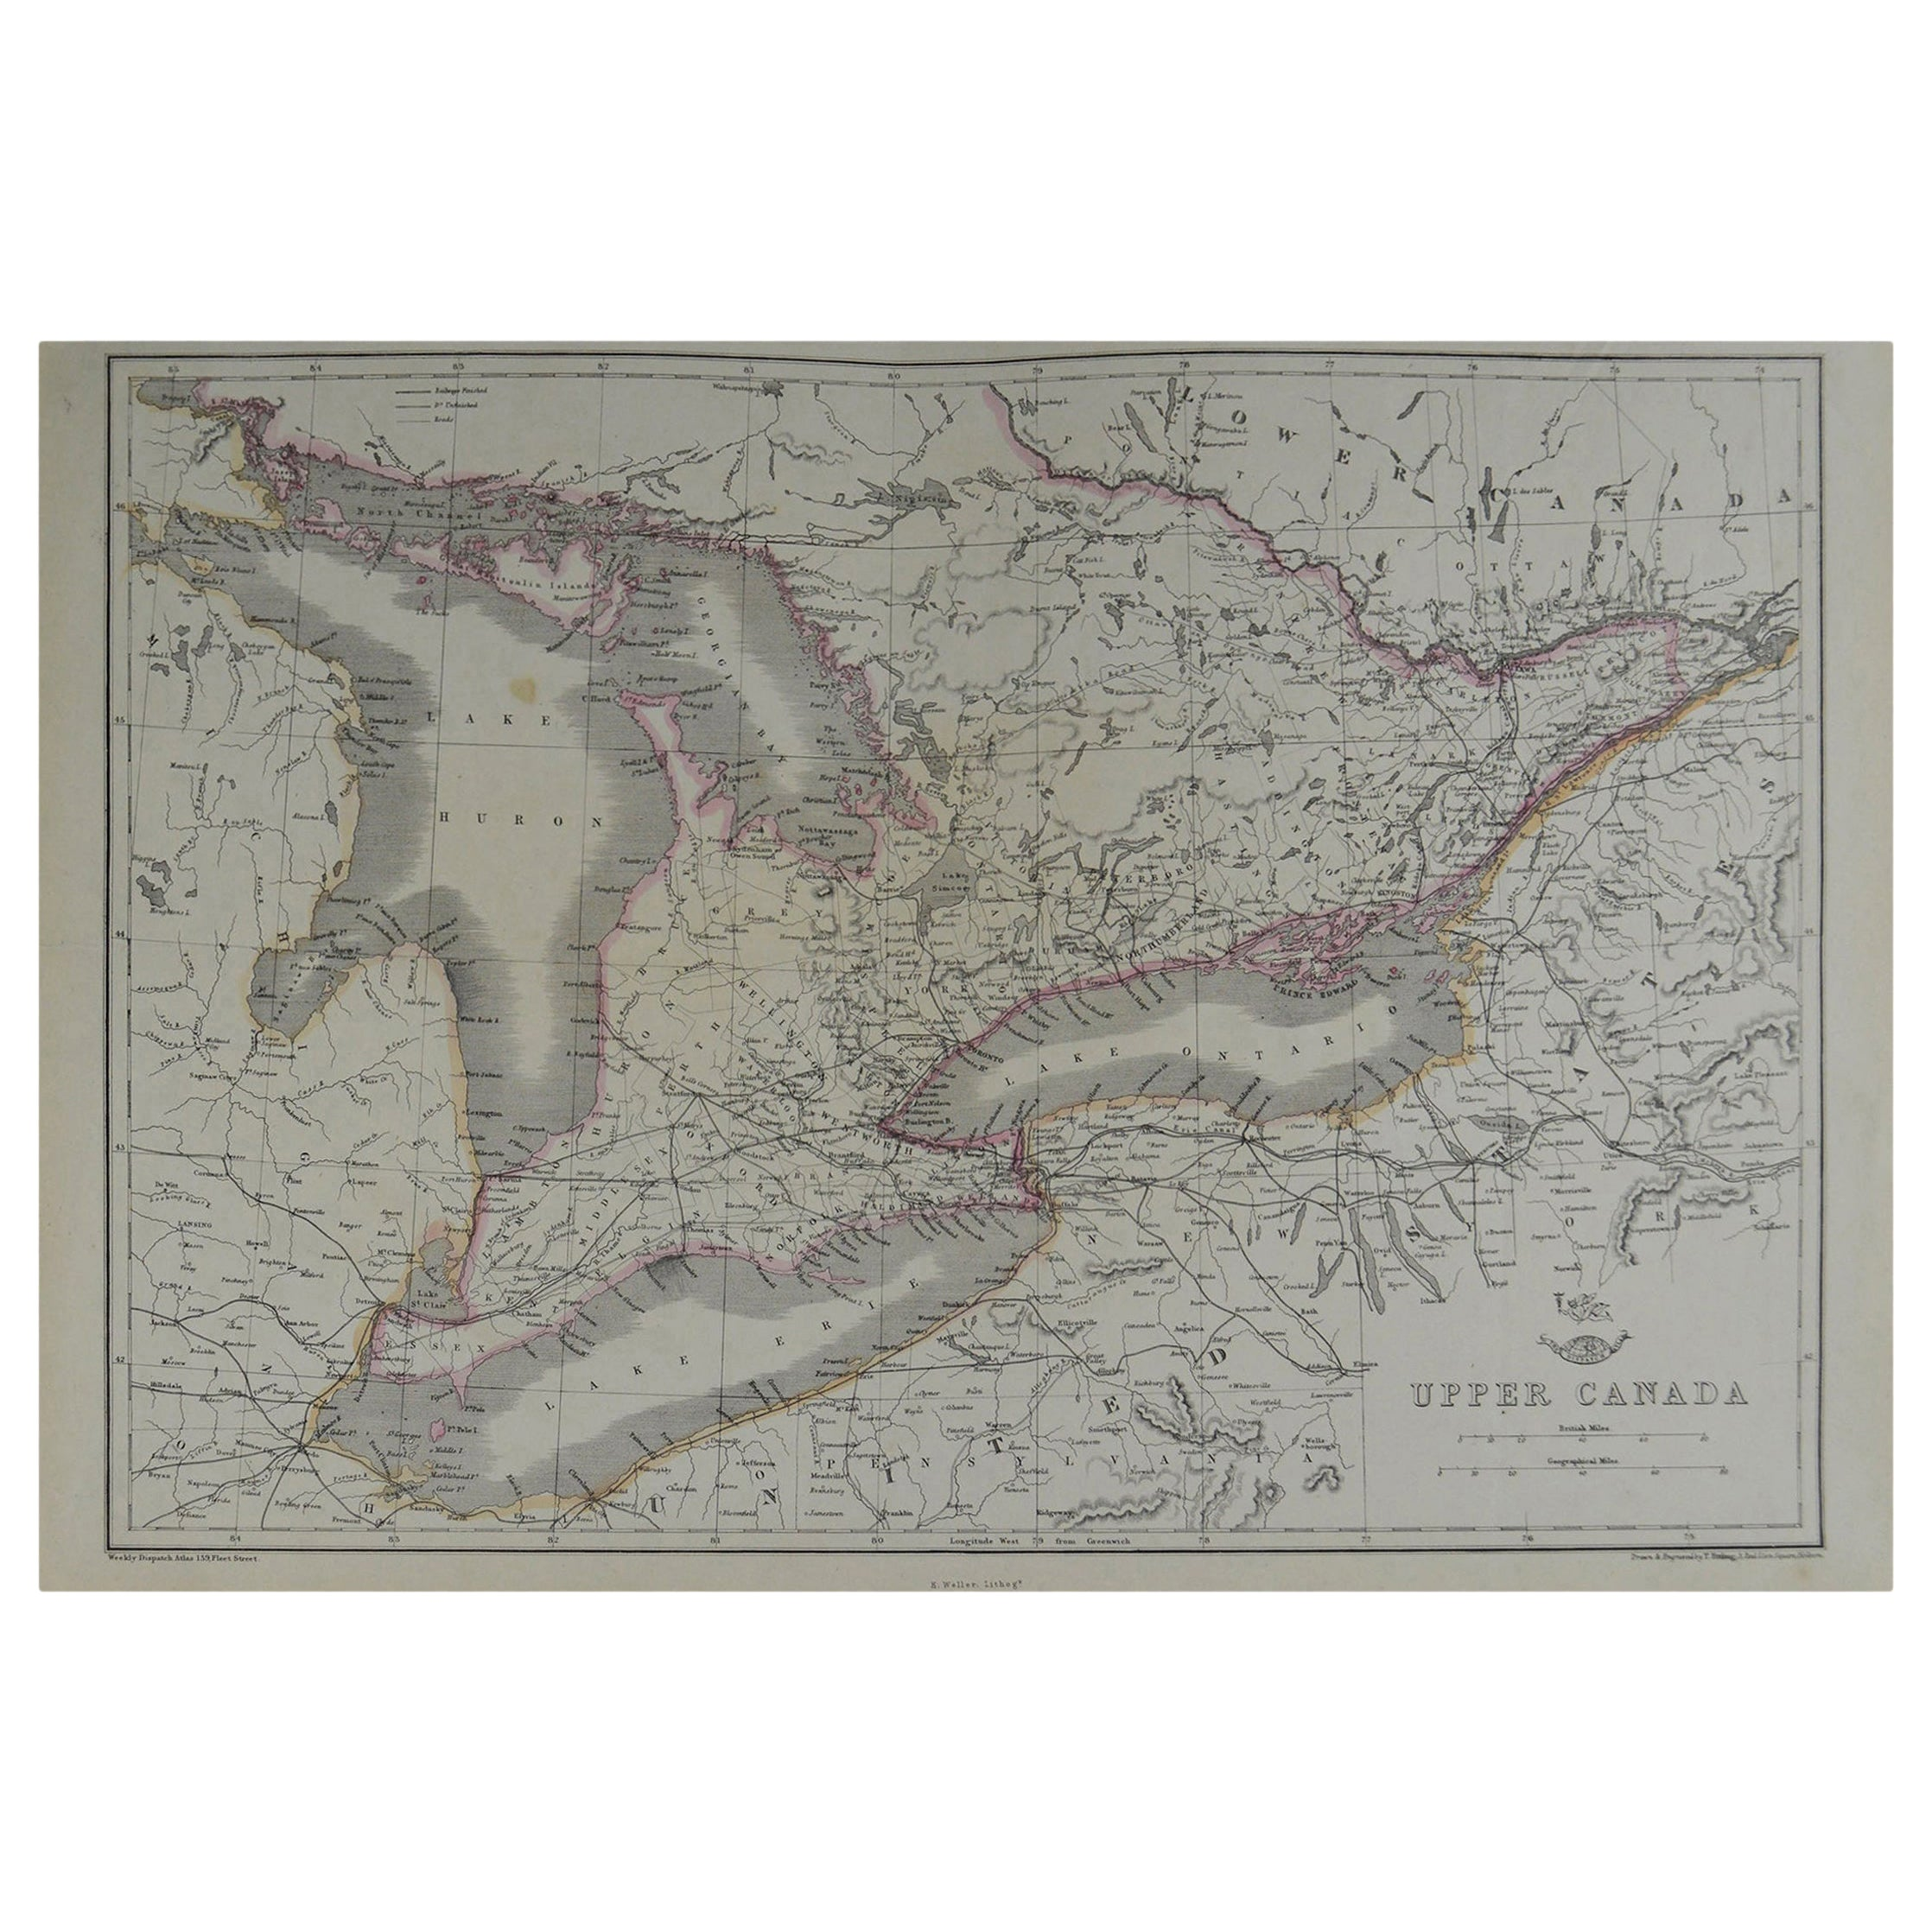 Original Antique Map of the Great Lakes, Canada by T. Ettling, 1861